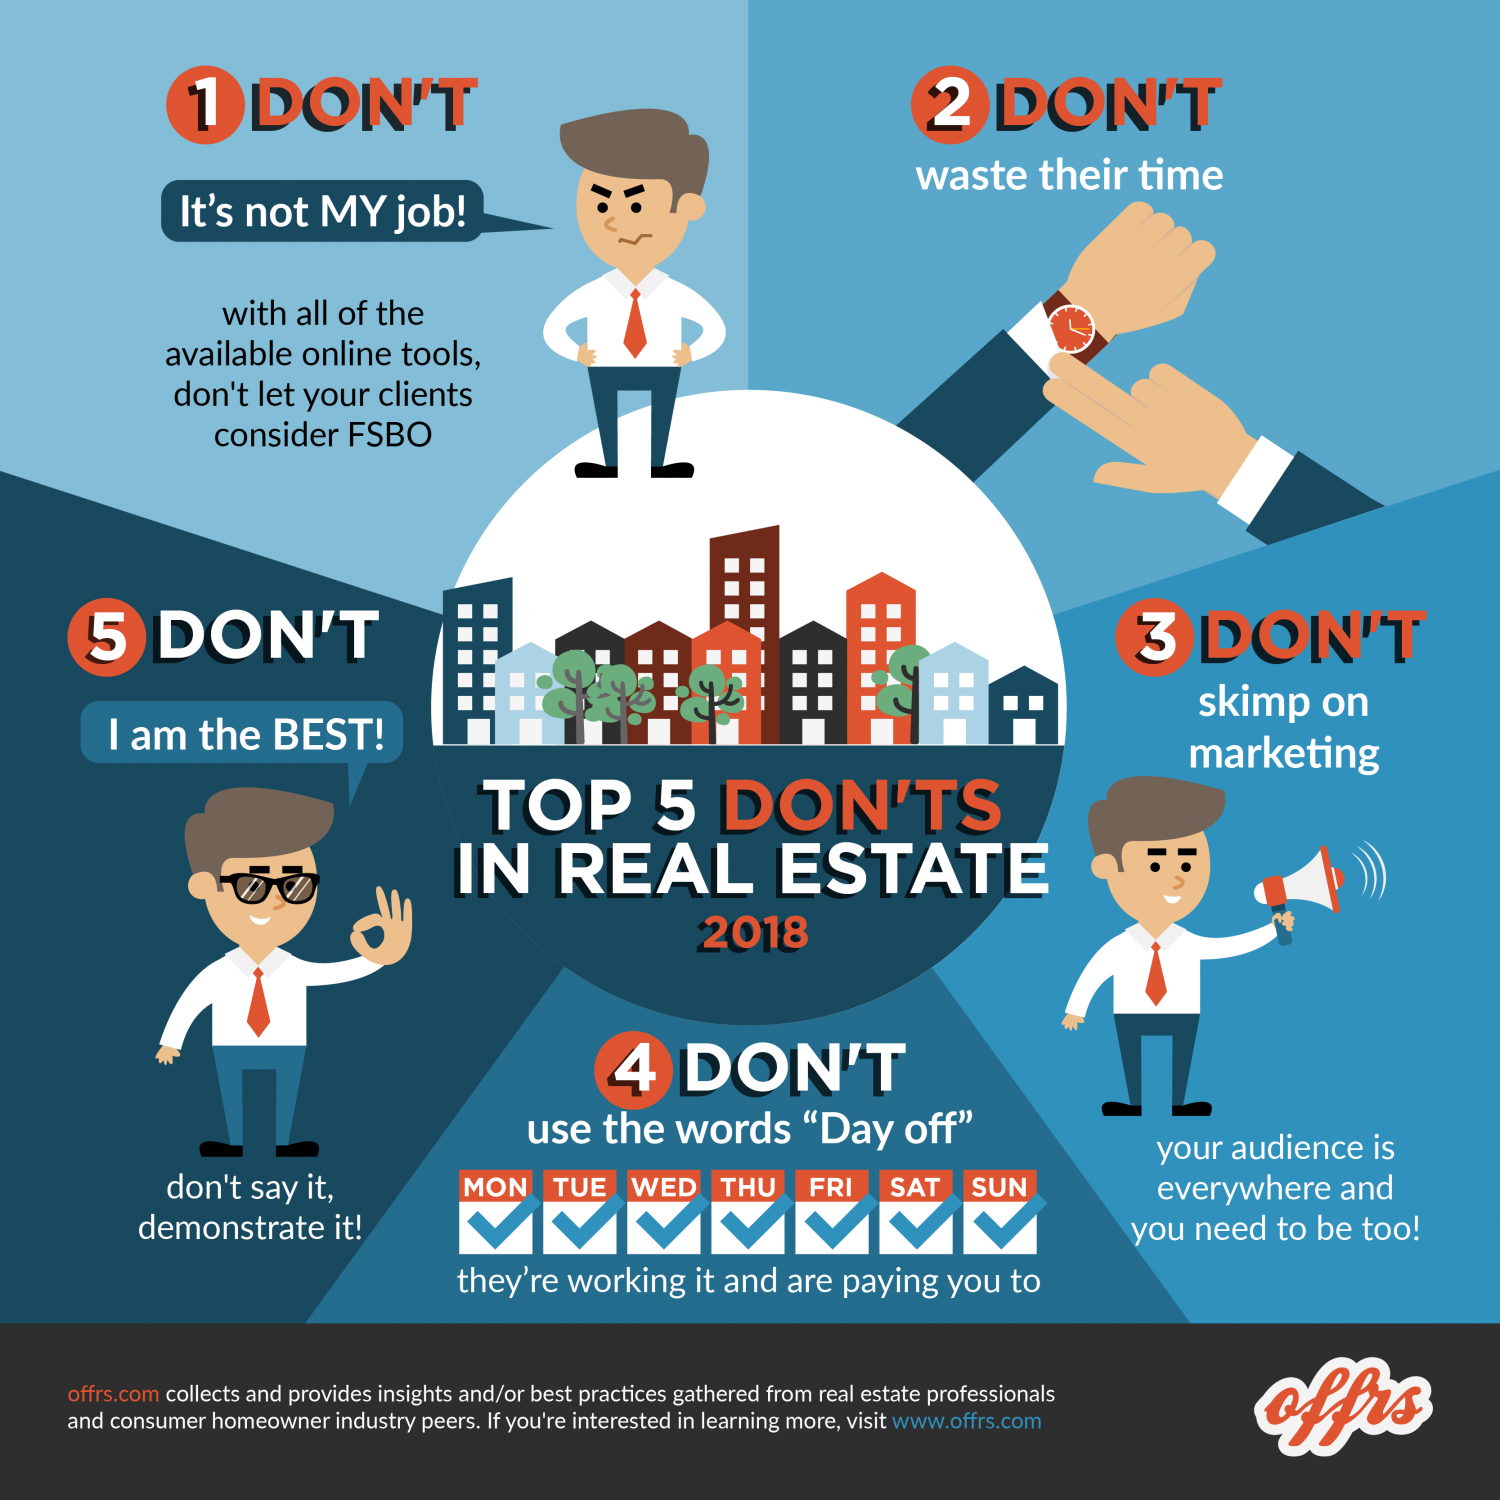 offrs.com Review: Top 5 Don'ts in Real Estate for 2018 - an offrs.com review Infographic